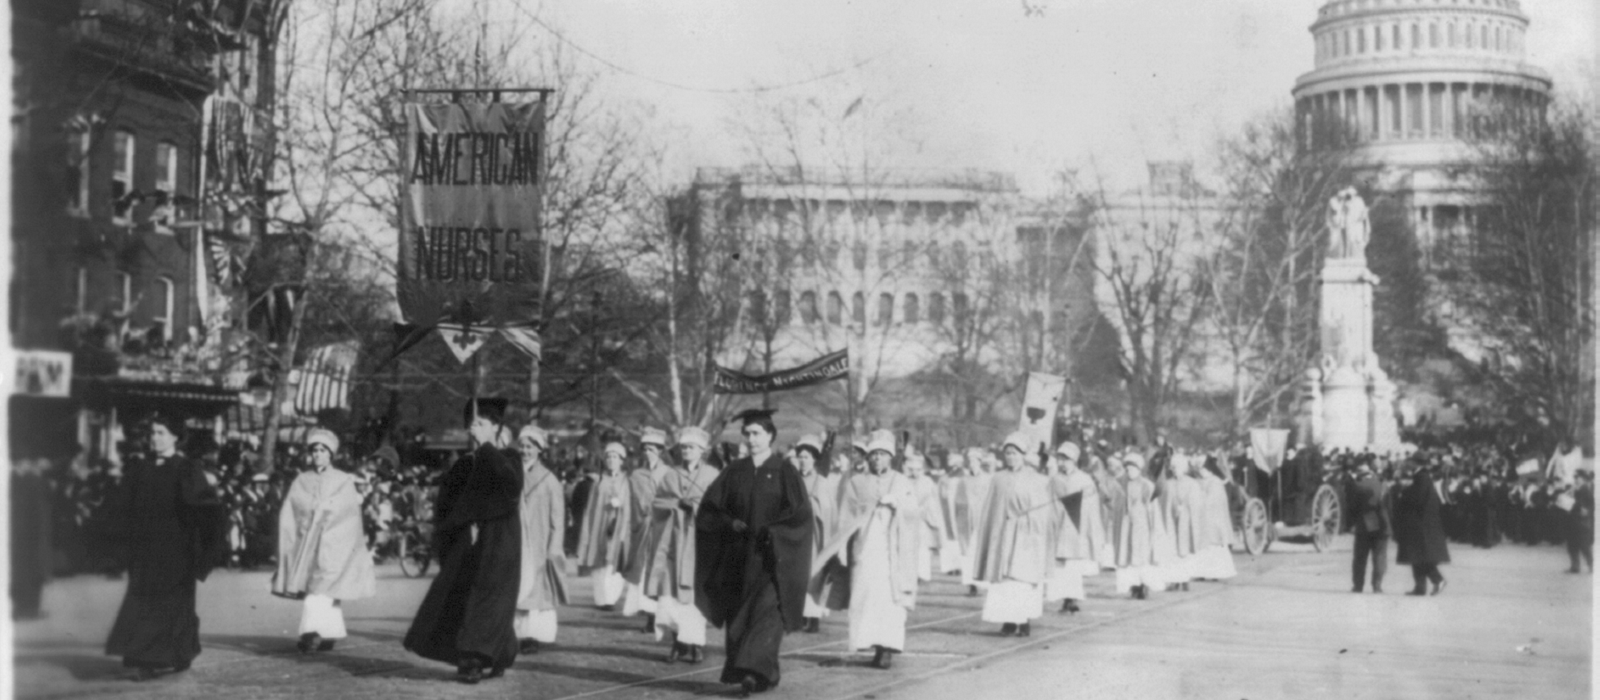 Suffragette protest